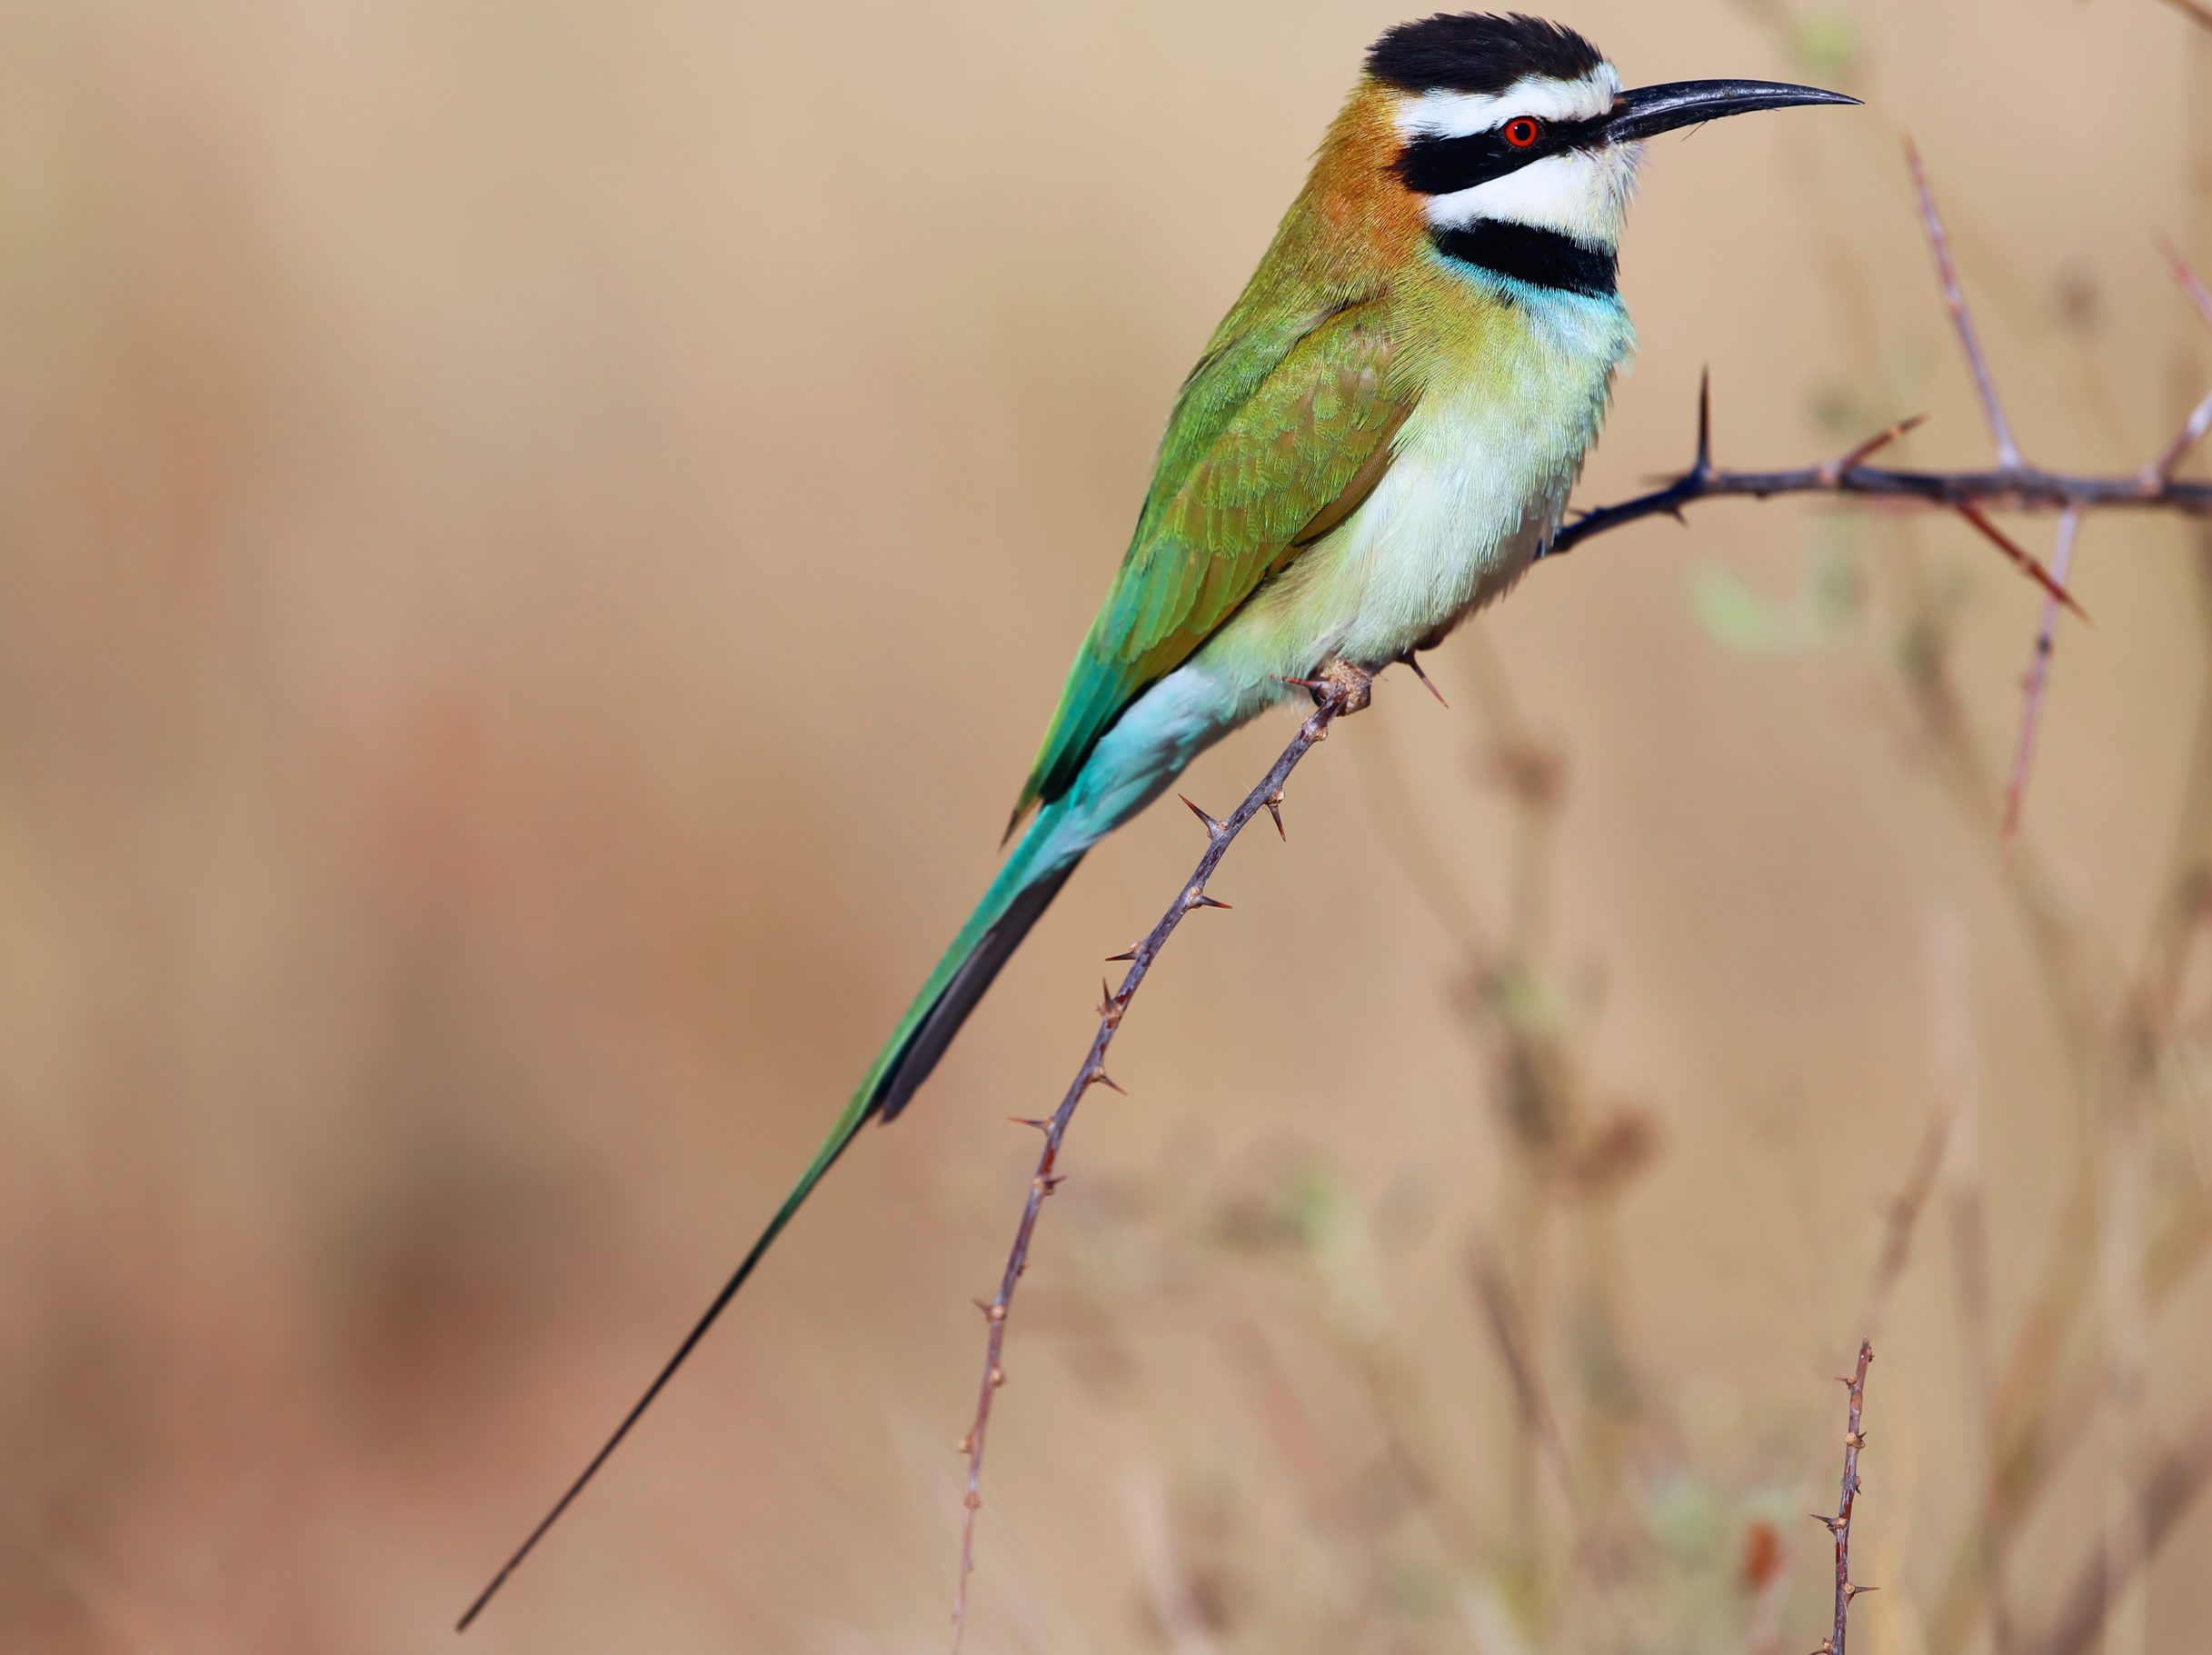 White-throated Bee-eater perched on a branch